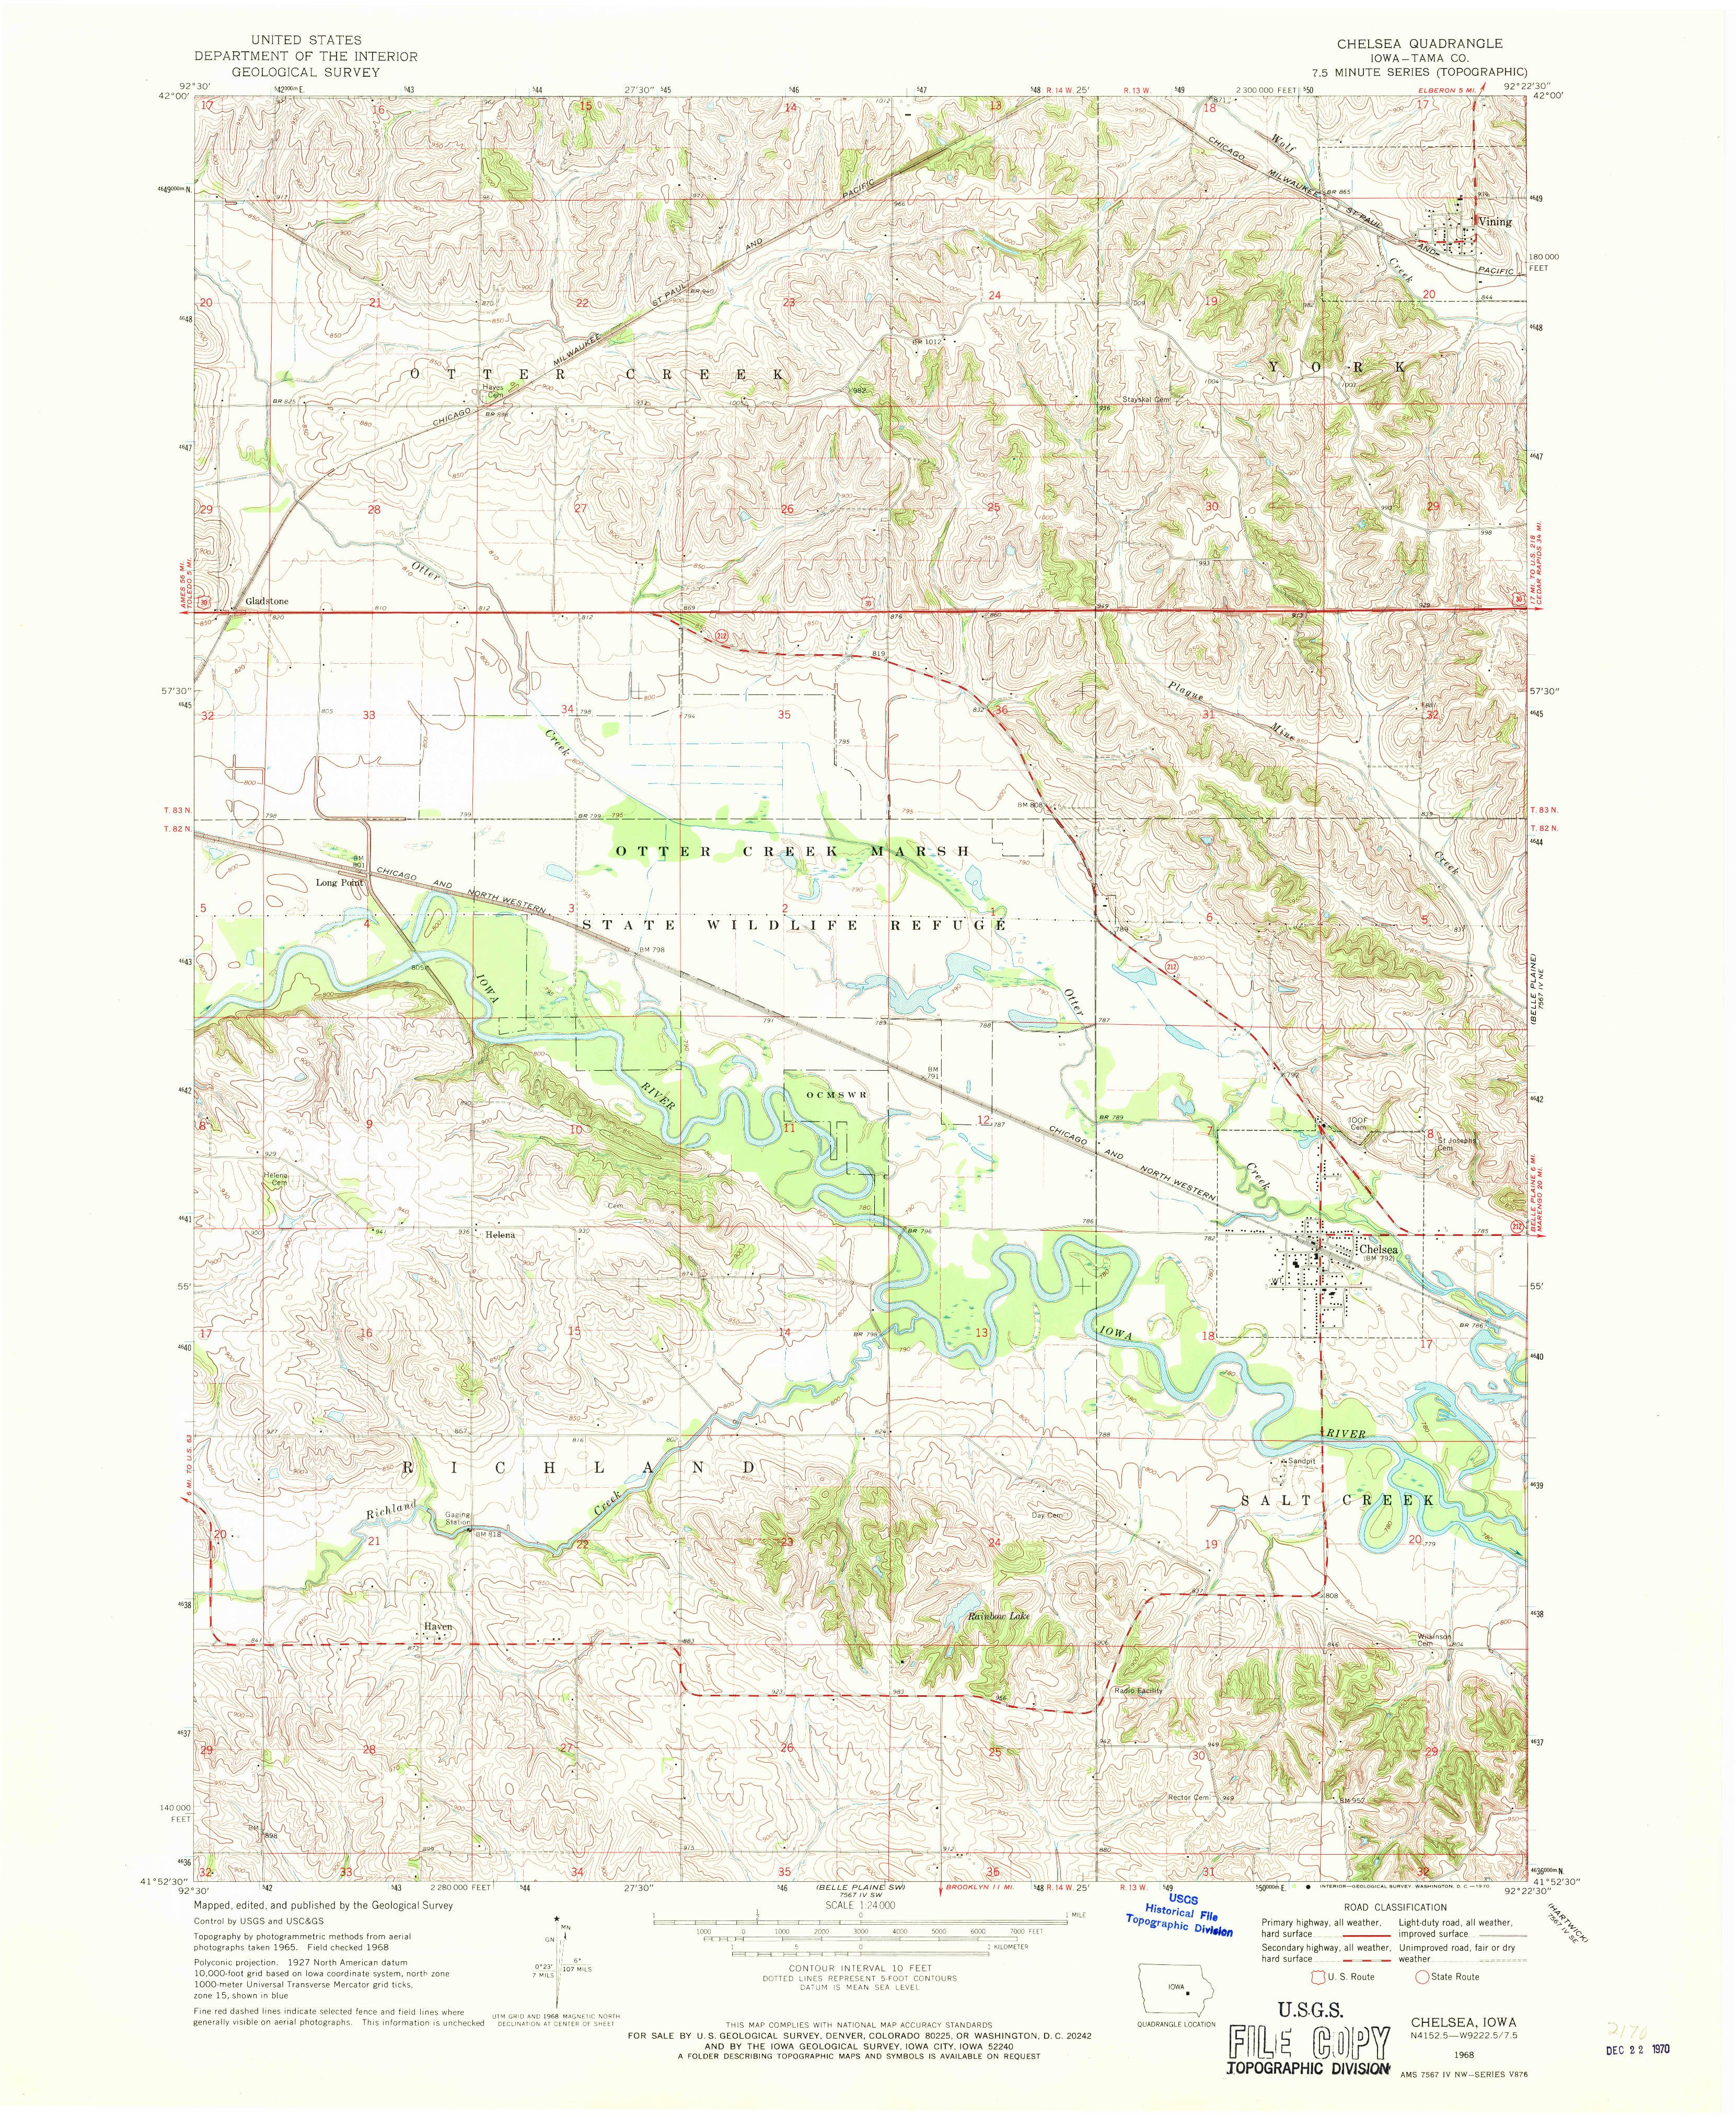 Chelsea IA Map From The USGS Historical Topographic Map - Topographic map free download